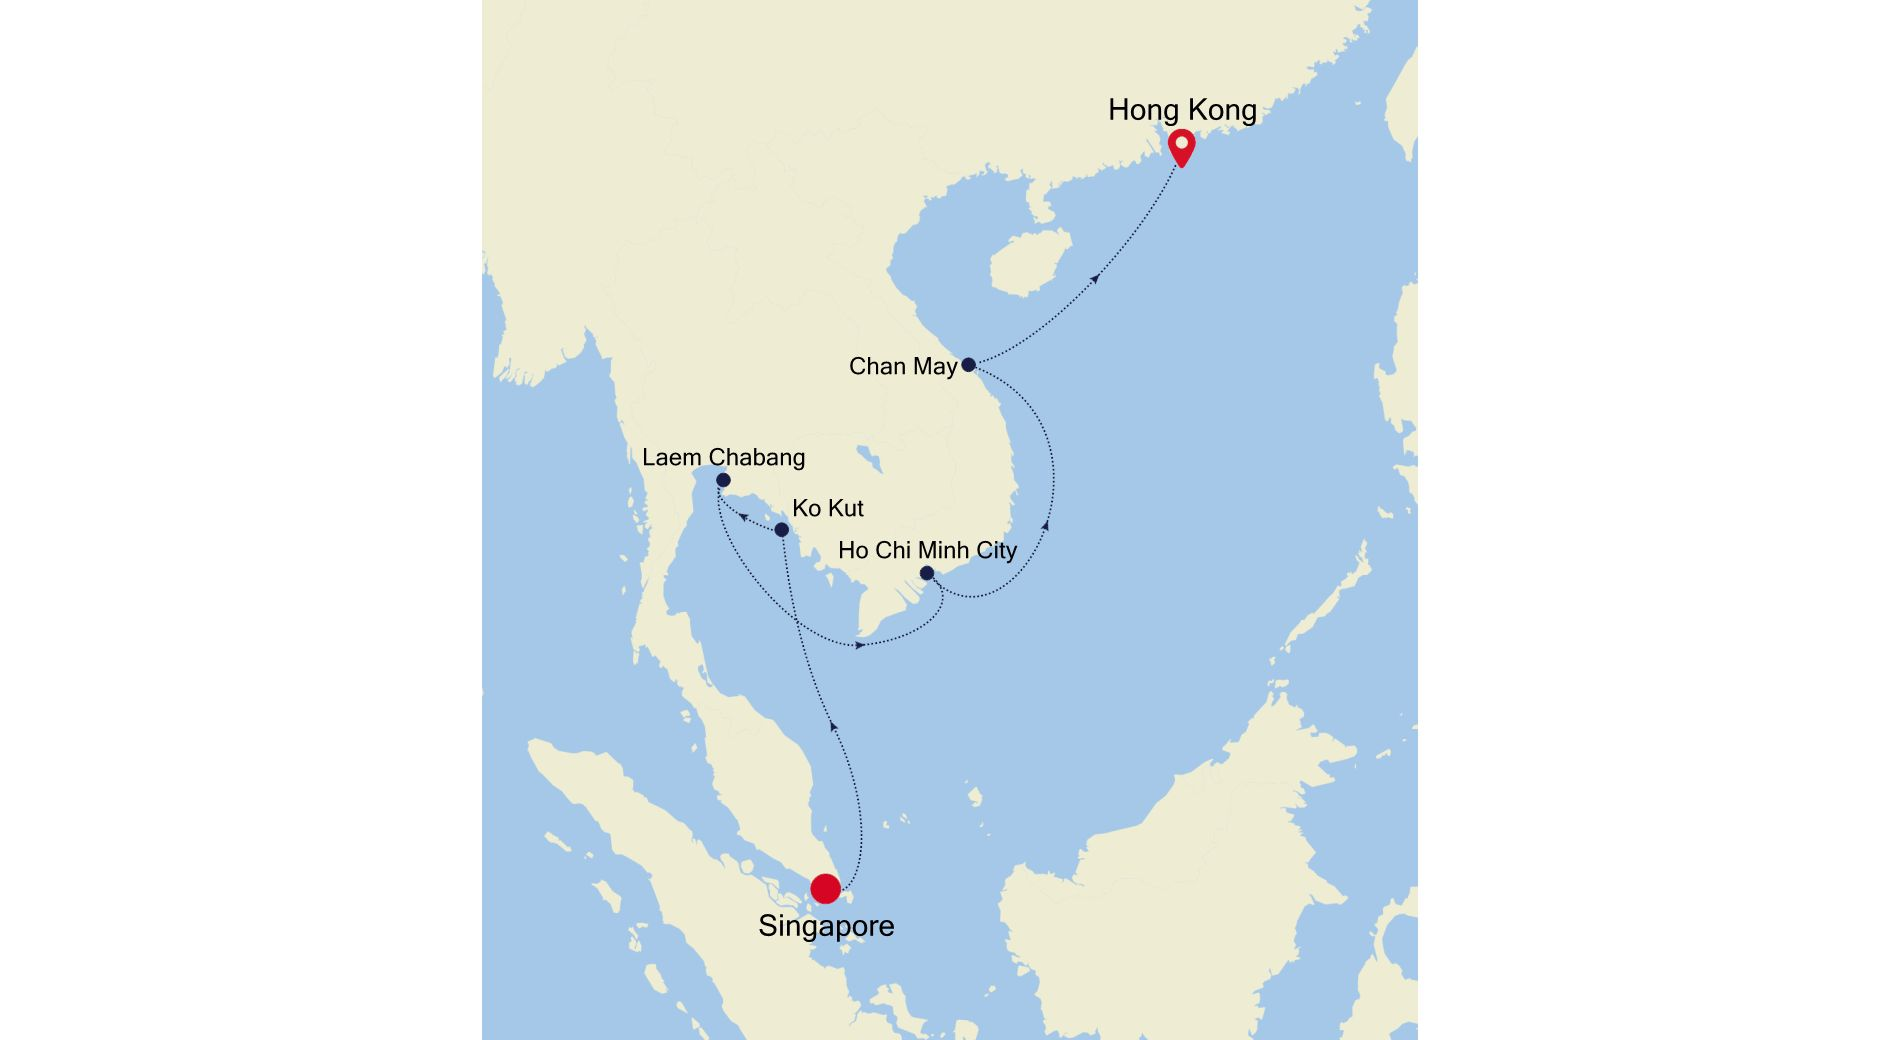 SM210309013 - Singapore to Hong Kong